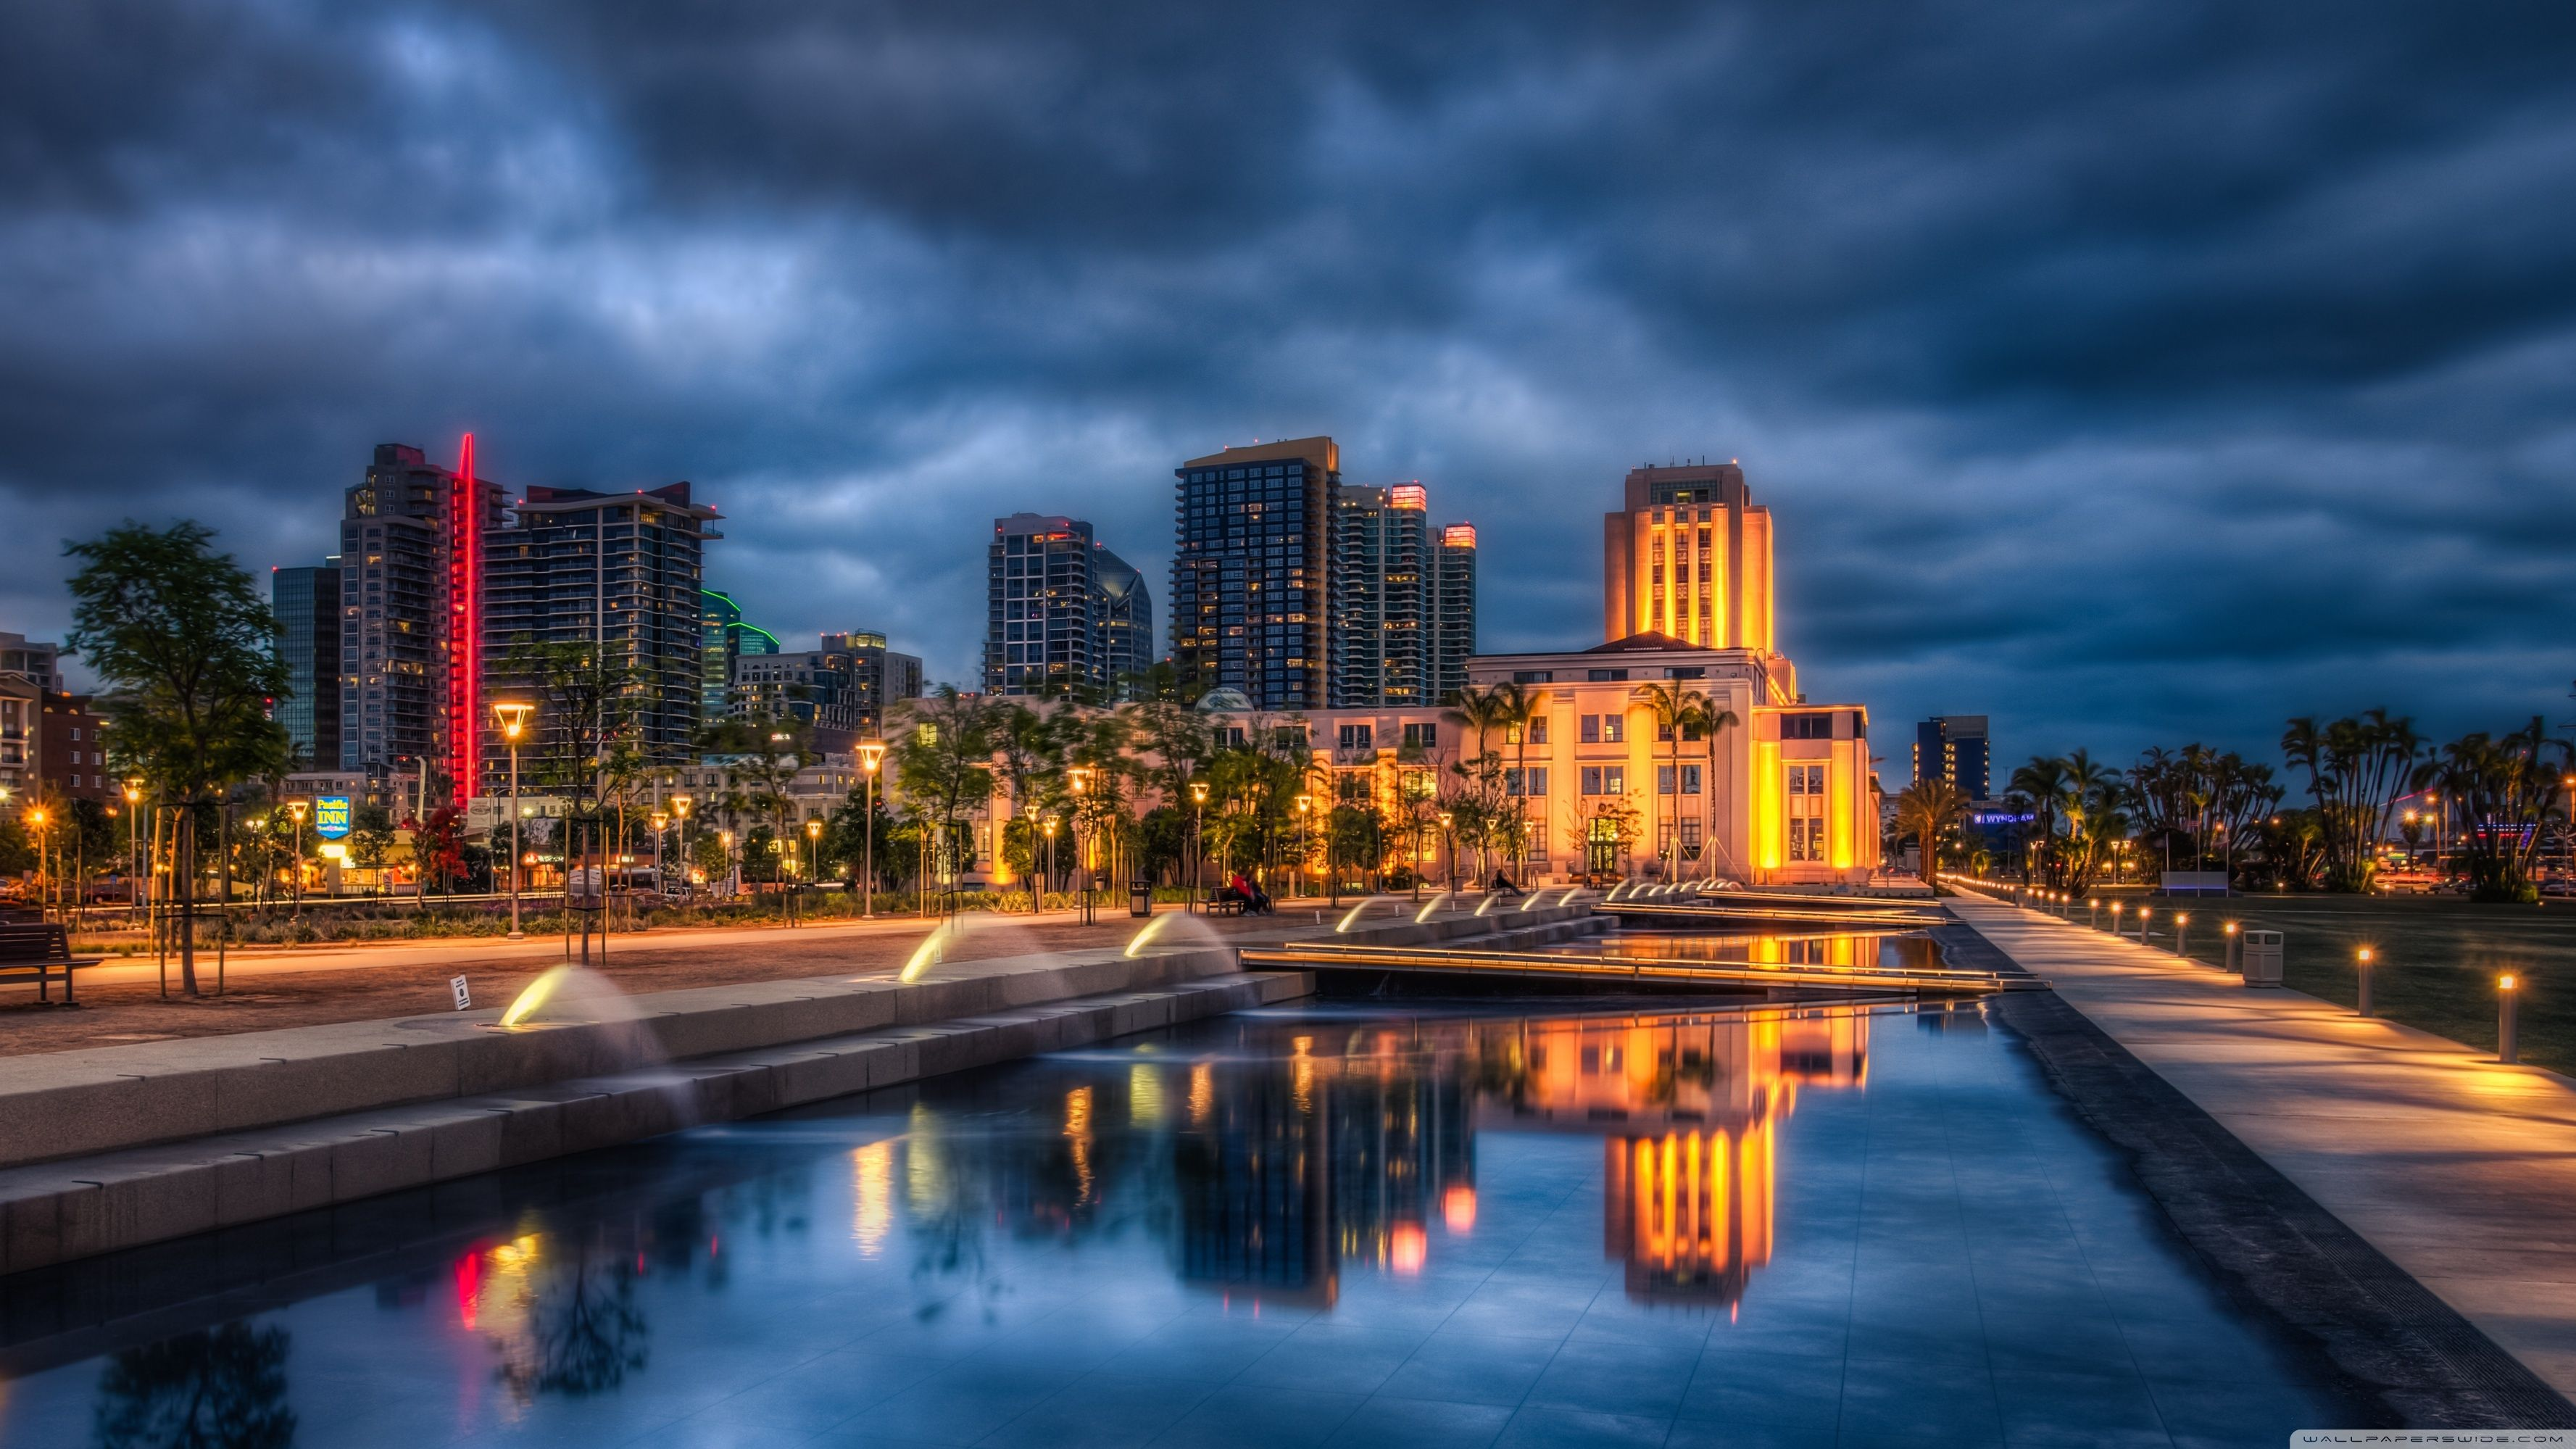 San Diego 4k Wallpapers Top Free San Diego 4k Backgrounds Wallpaperaccess